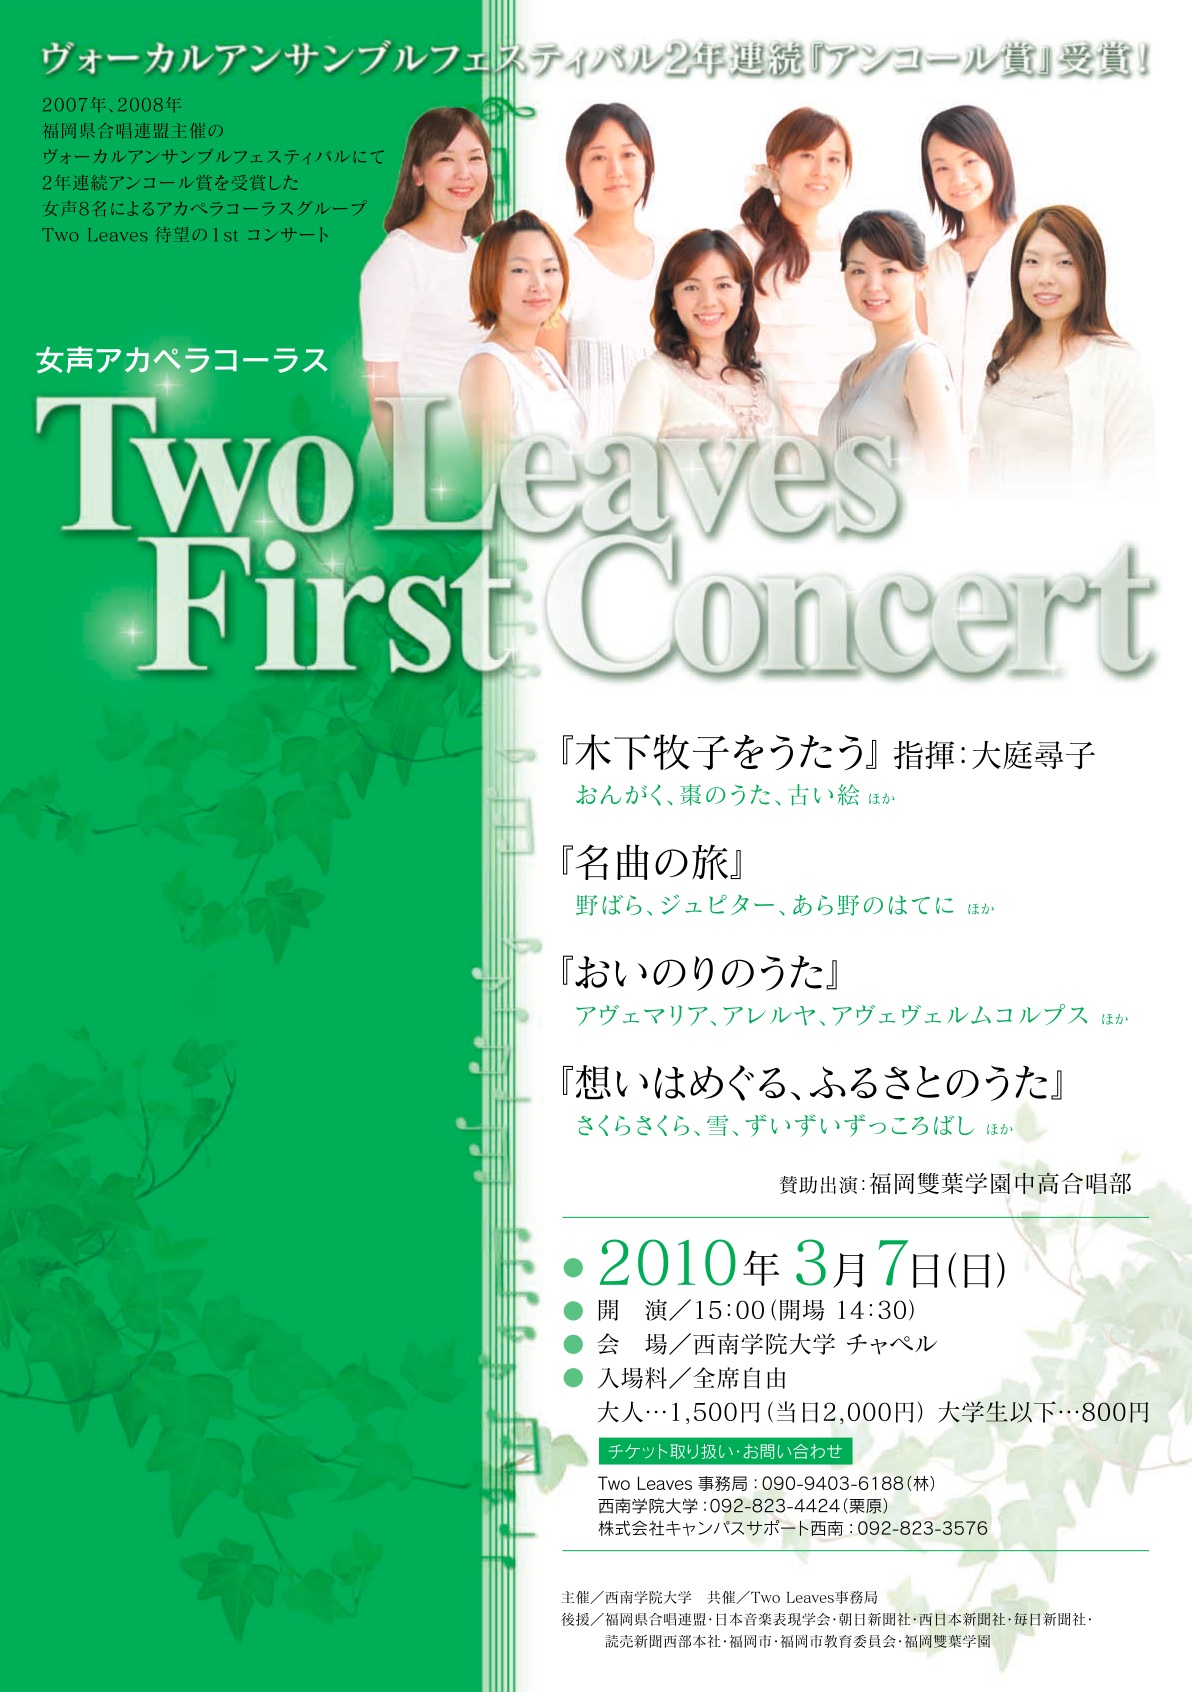 Two Leaves First Concert